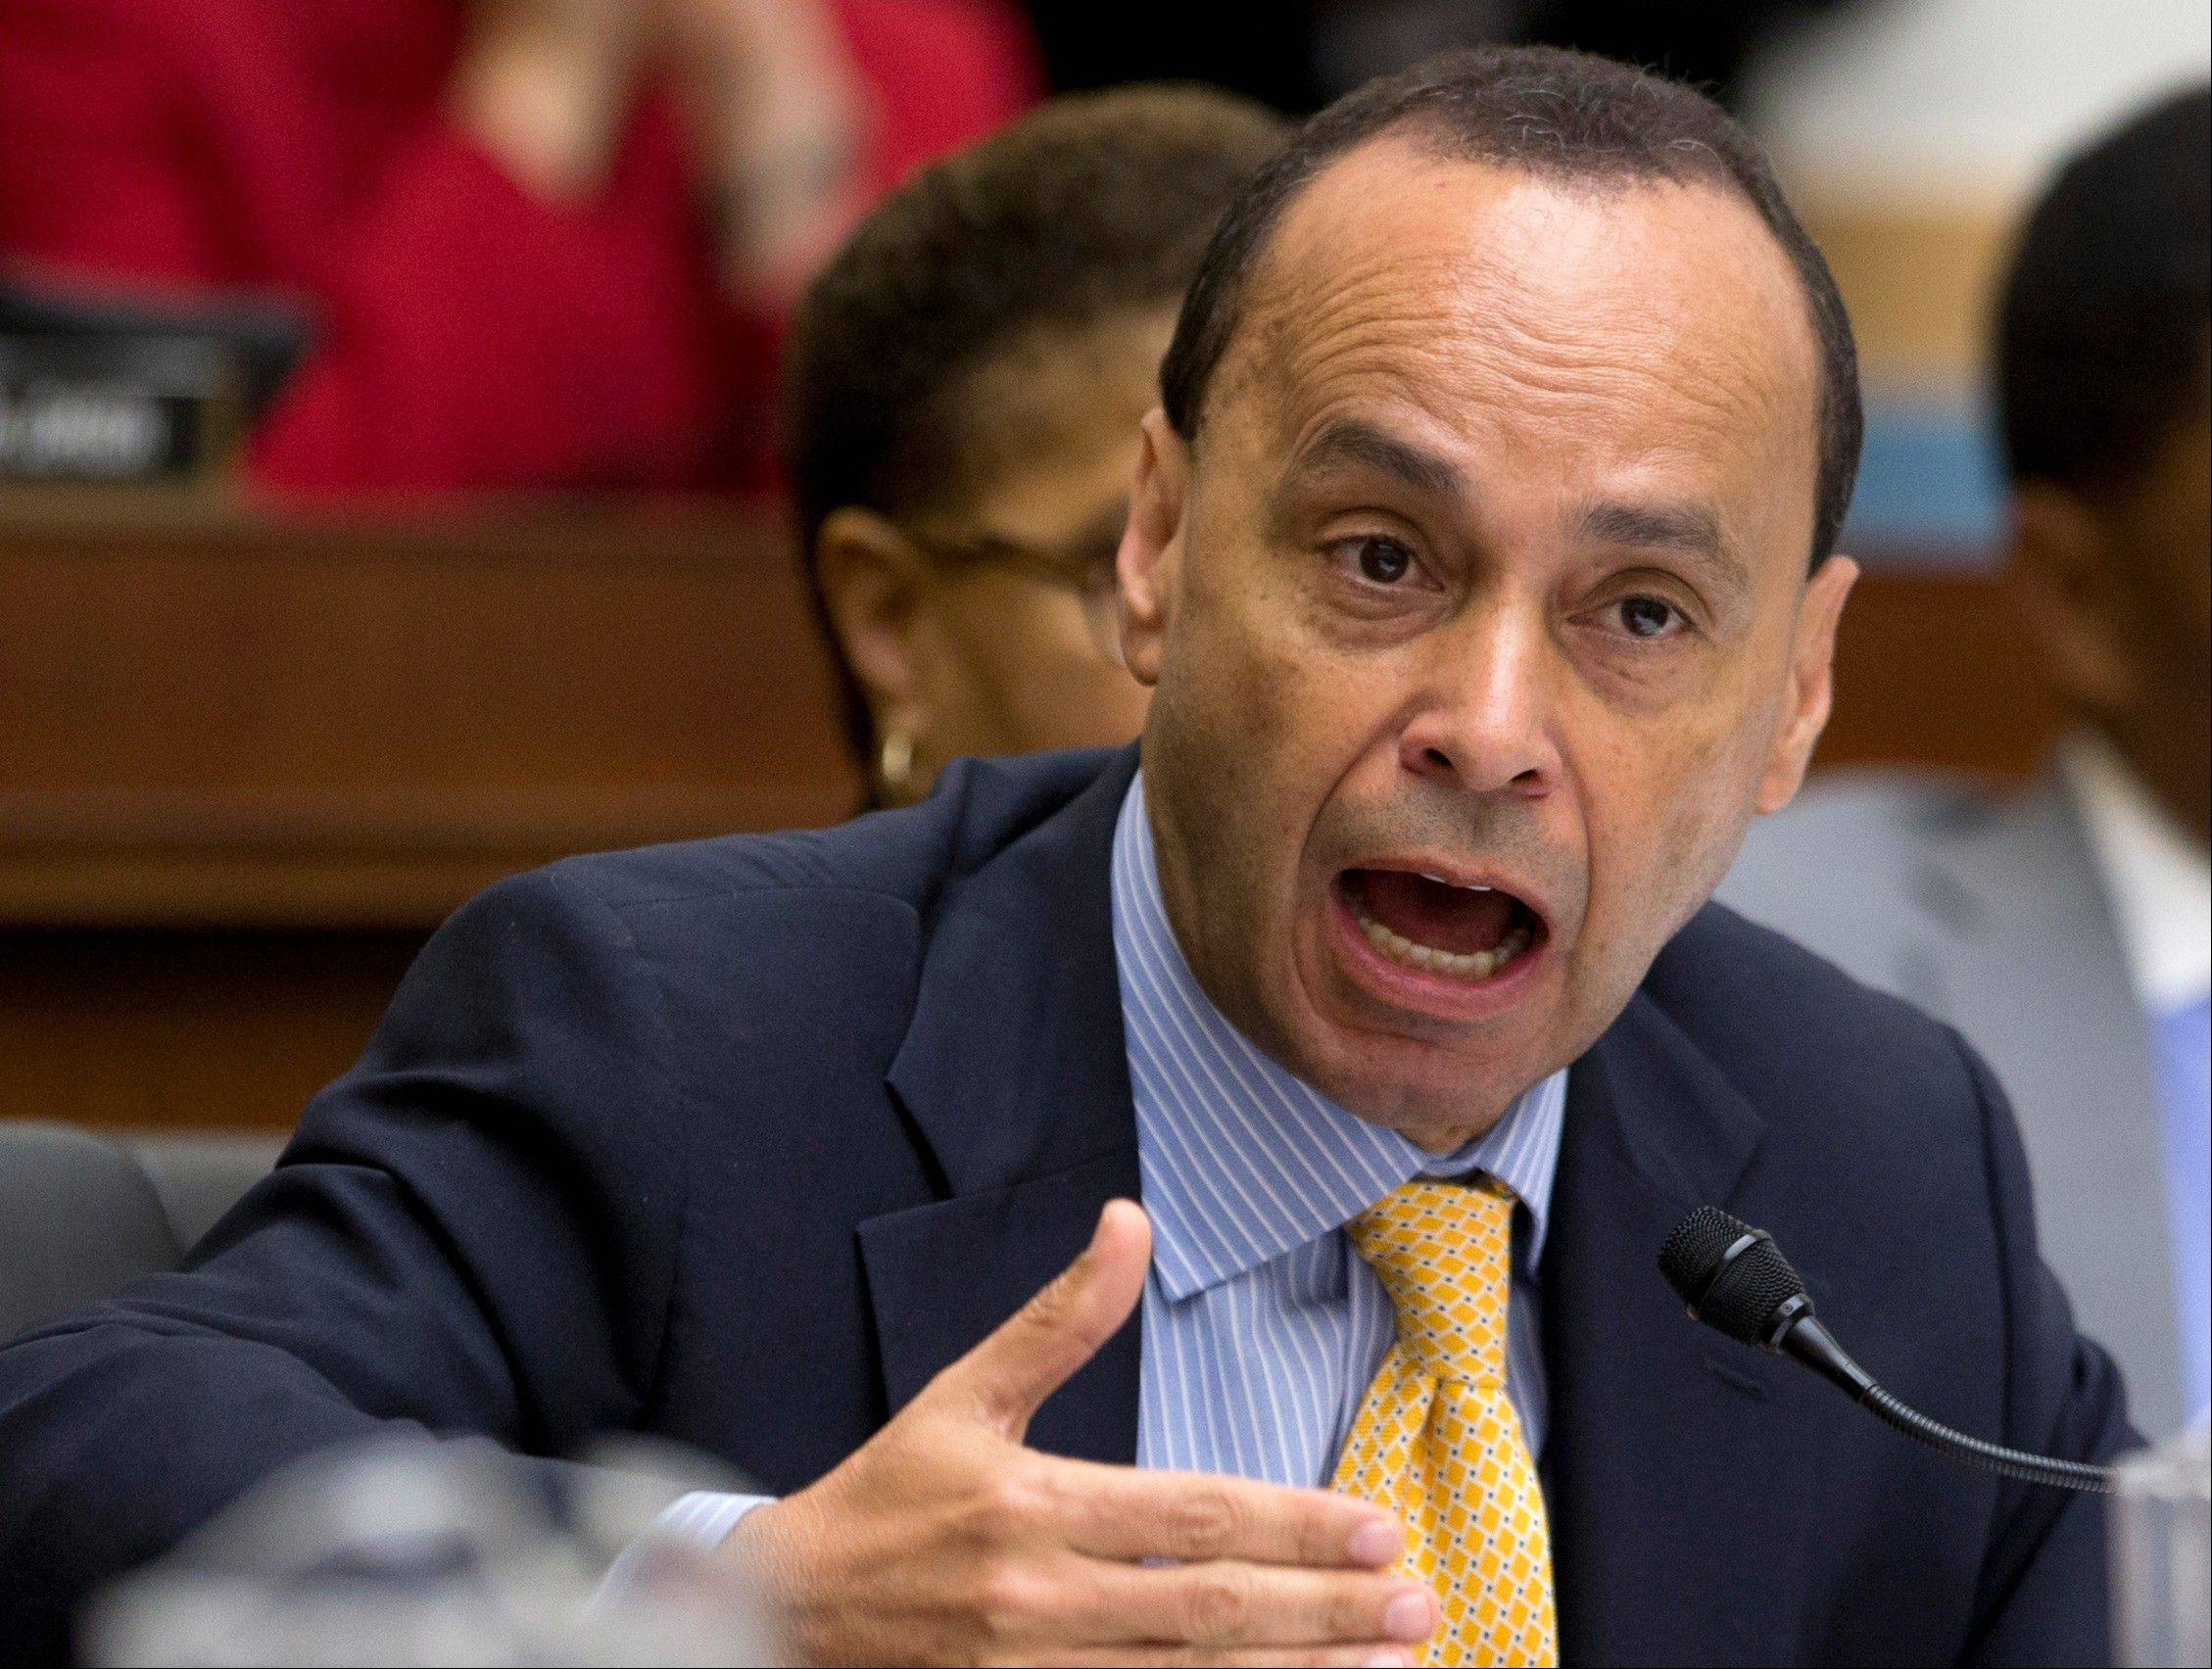 House Democrats called the Strengthen and Fortify Enforcement Act a dangerous retread of a similarly tough enforcement measure that sparked mass protests around the country in 2006. Reading the bill, �You would think there are 11 million criminals in the United States,� said Rep. Luis Gutierrez, a Chicago Democrat.